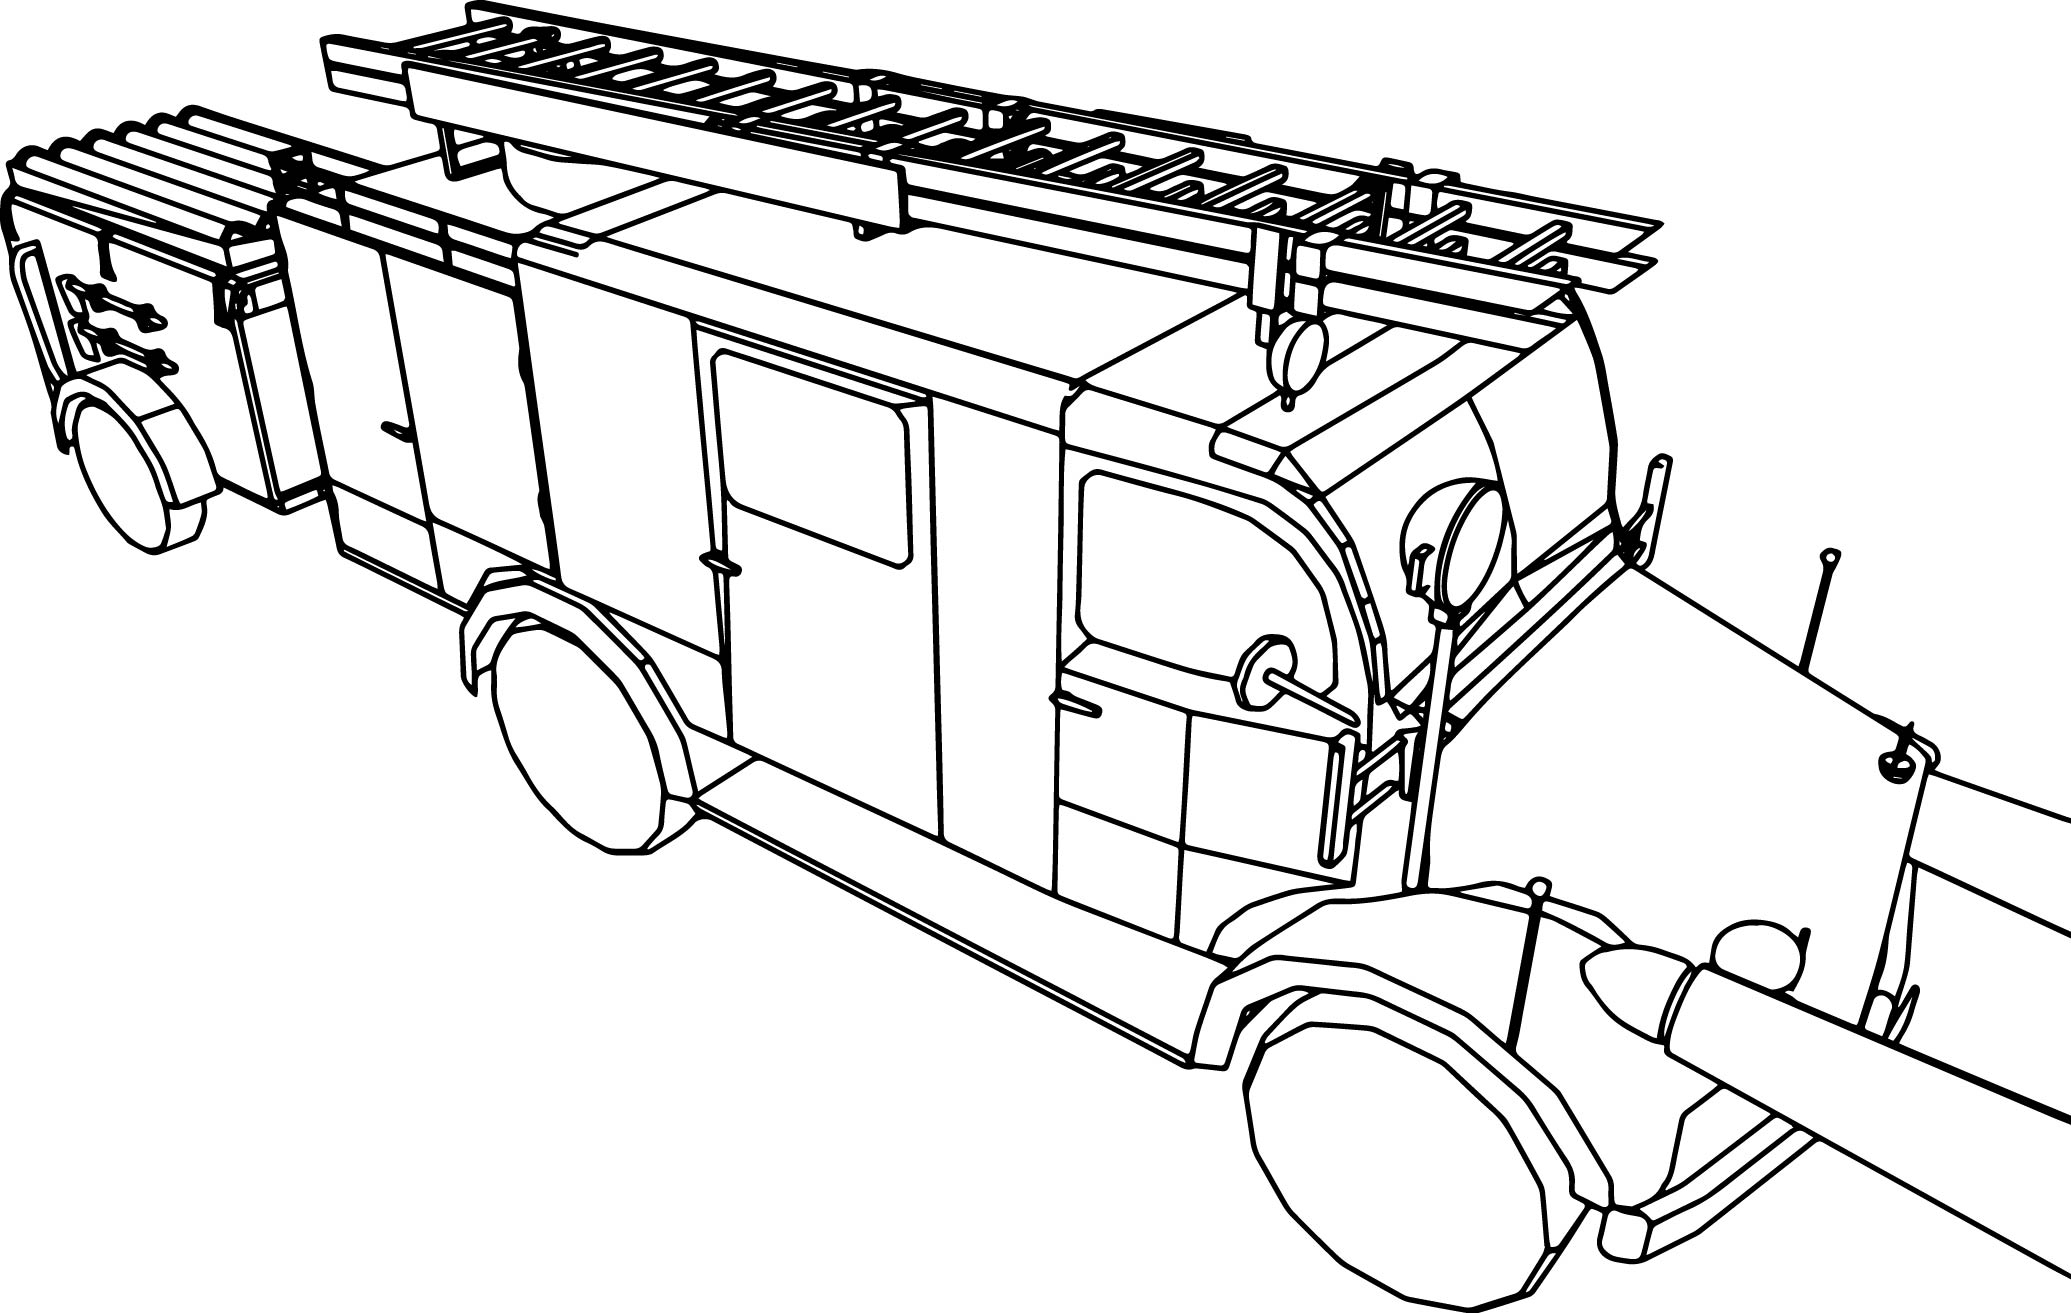 Benz Llg Minibus Coloring Page